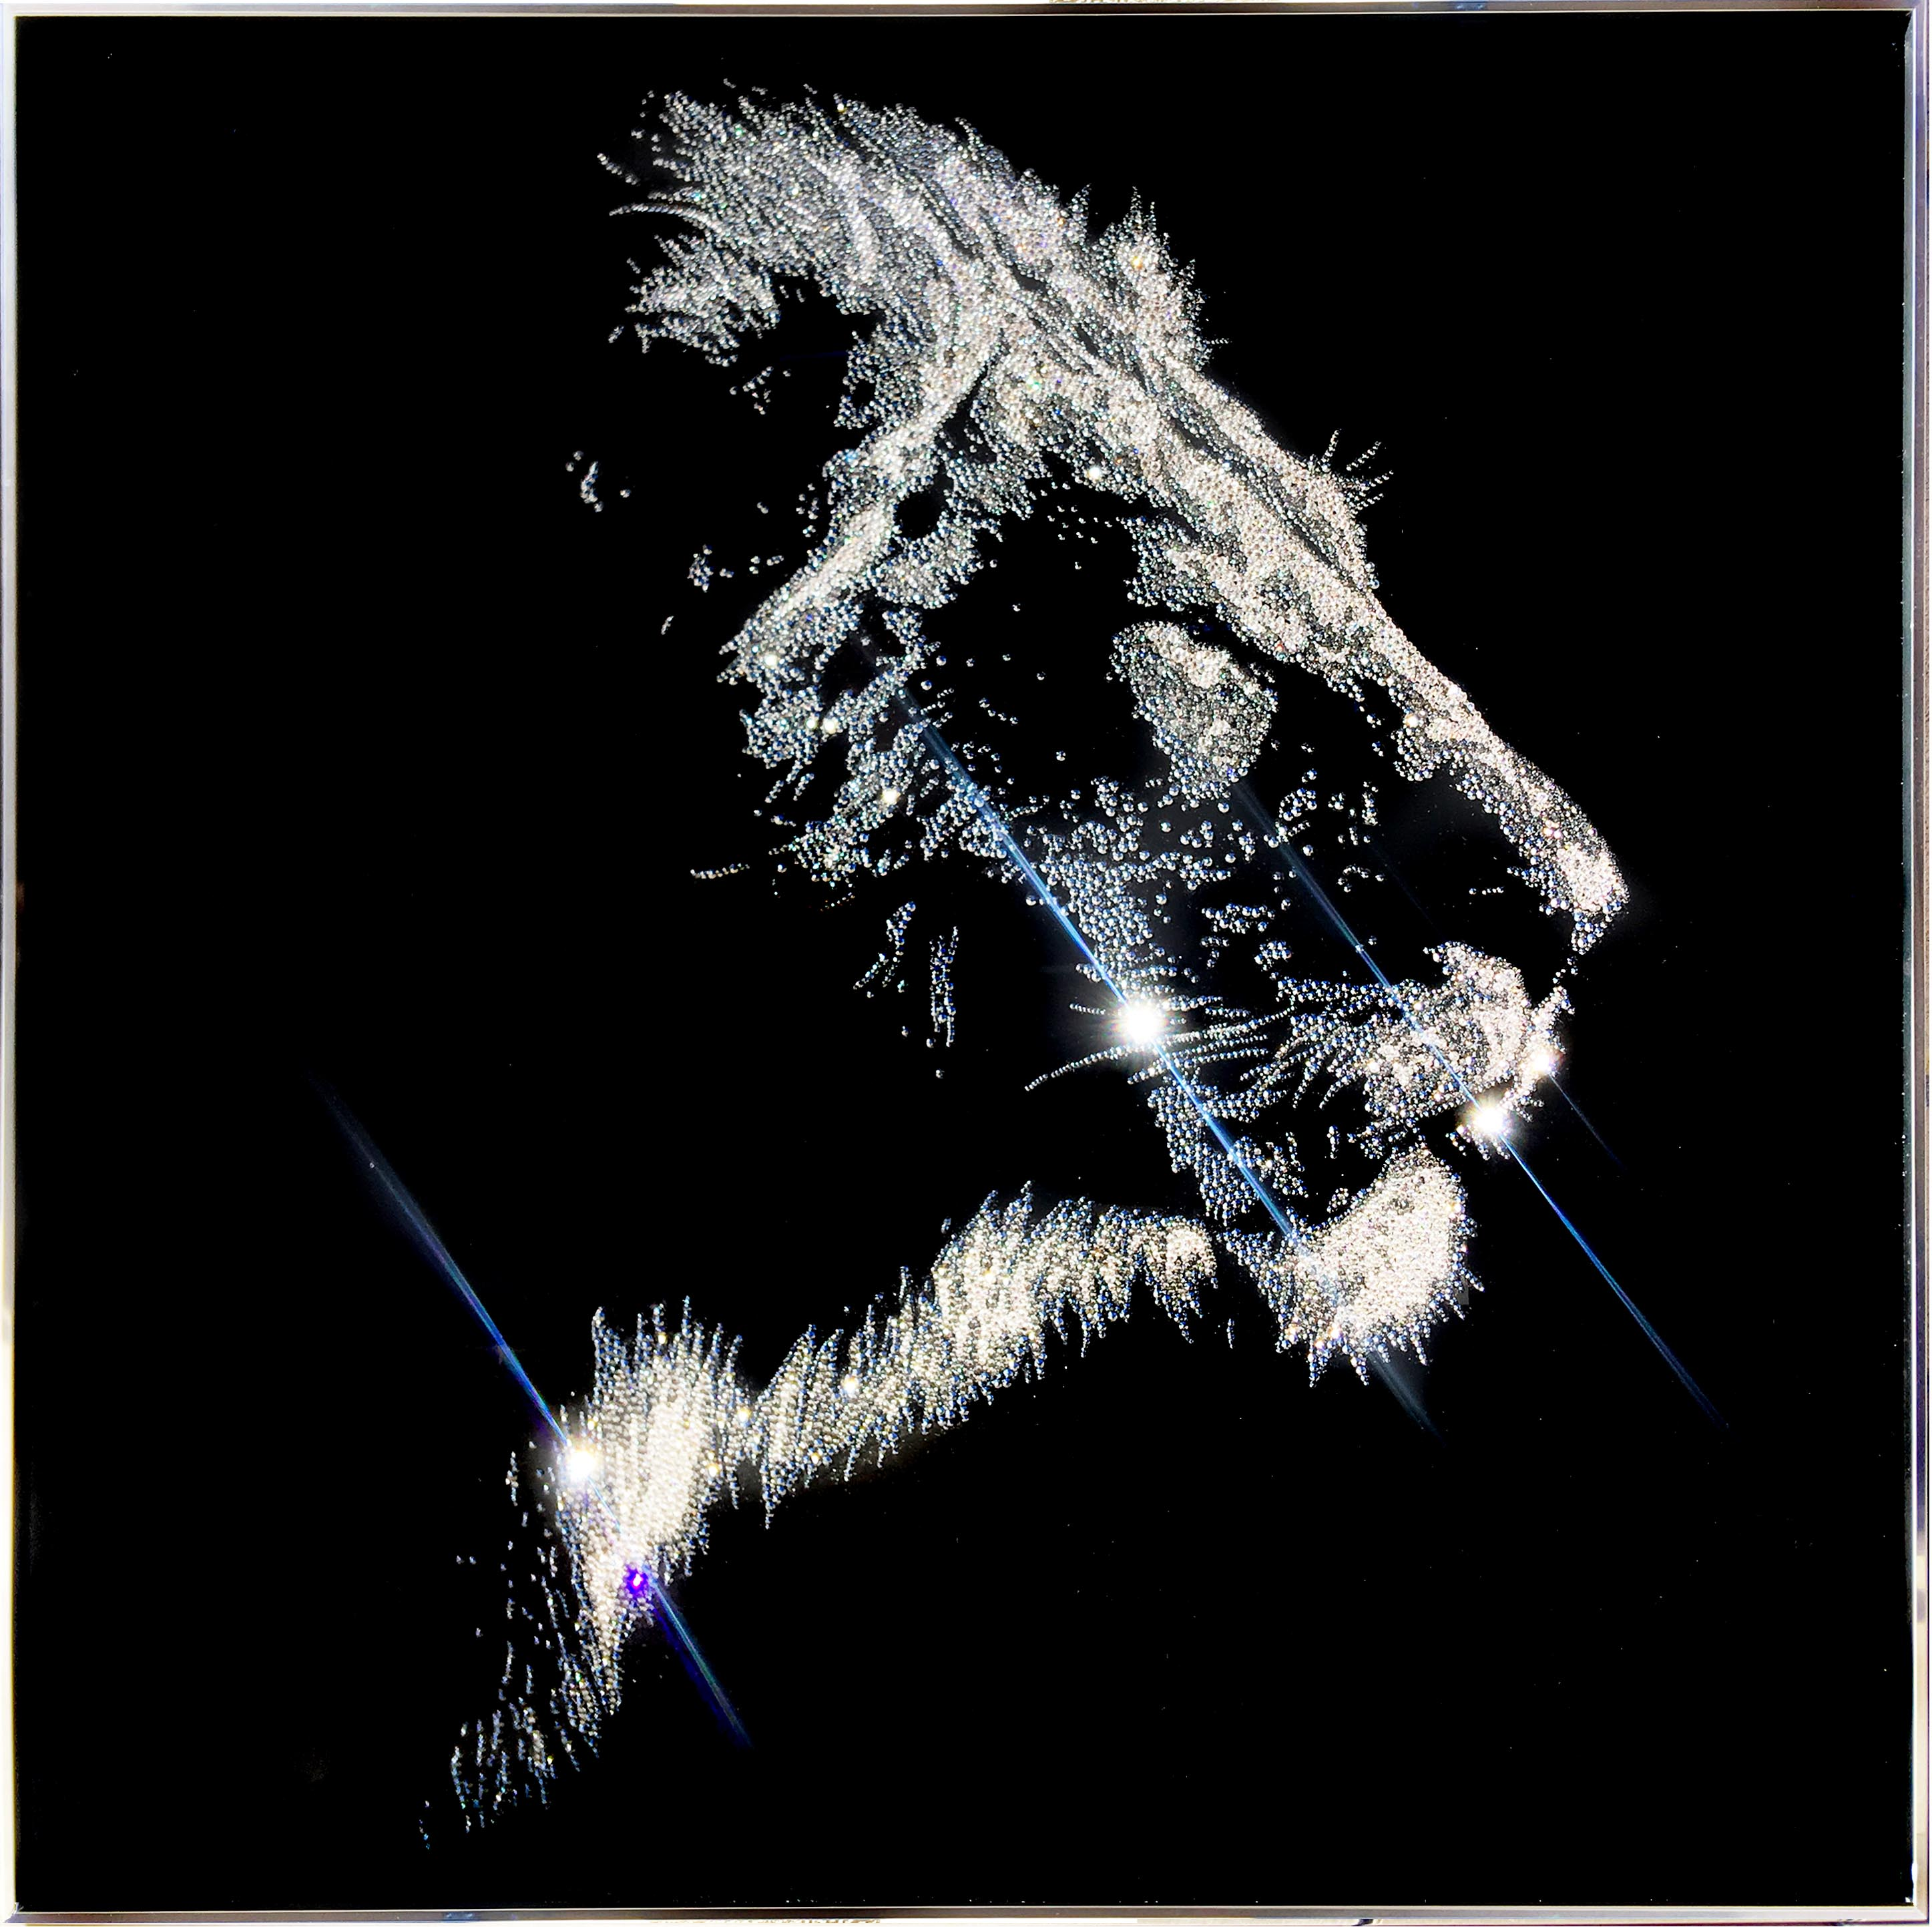 Manes in the wind, 10600 Crystals from Swarovski® su plexiglas, 80x80 cm. 2019